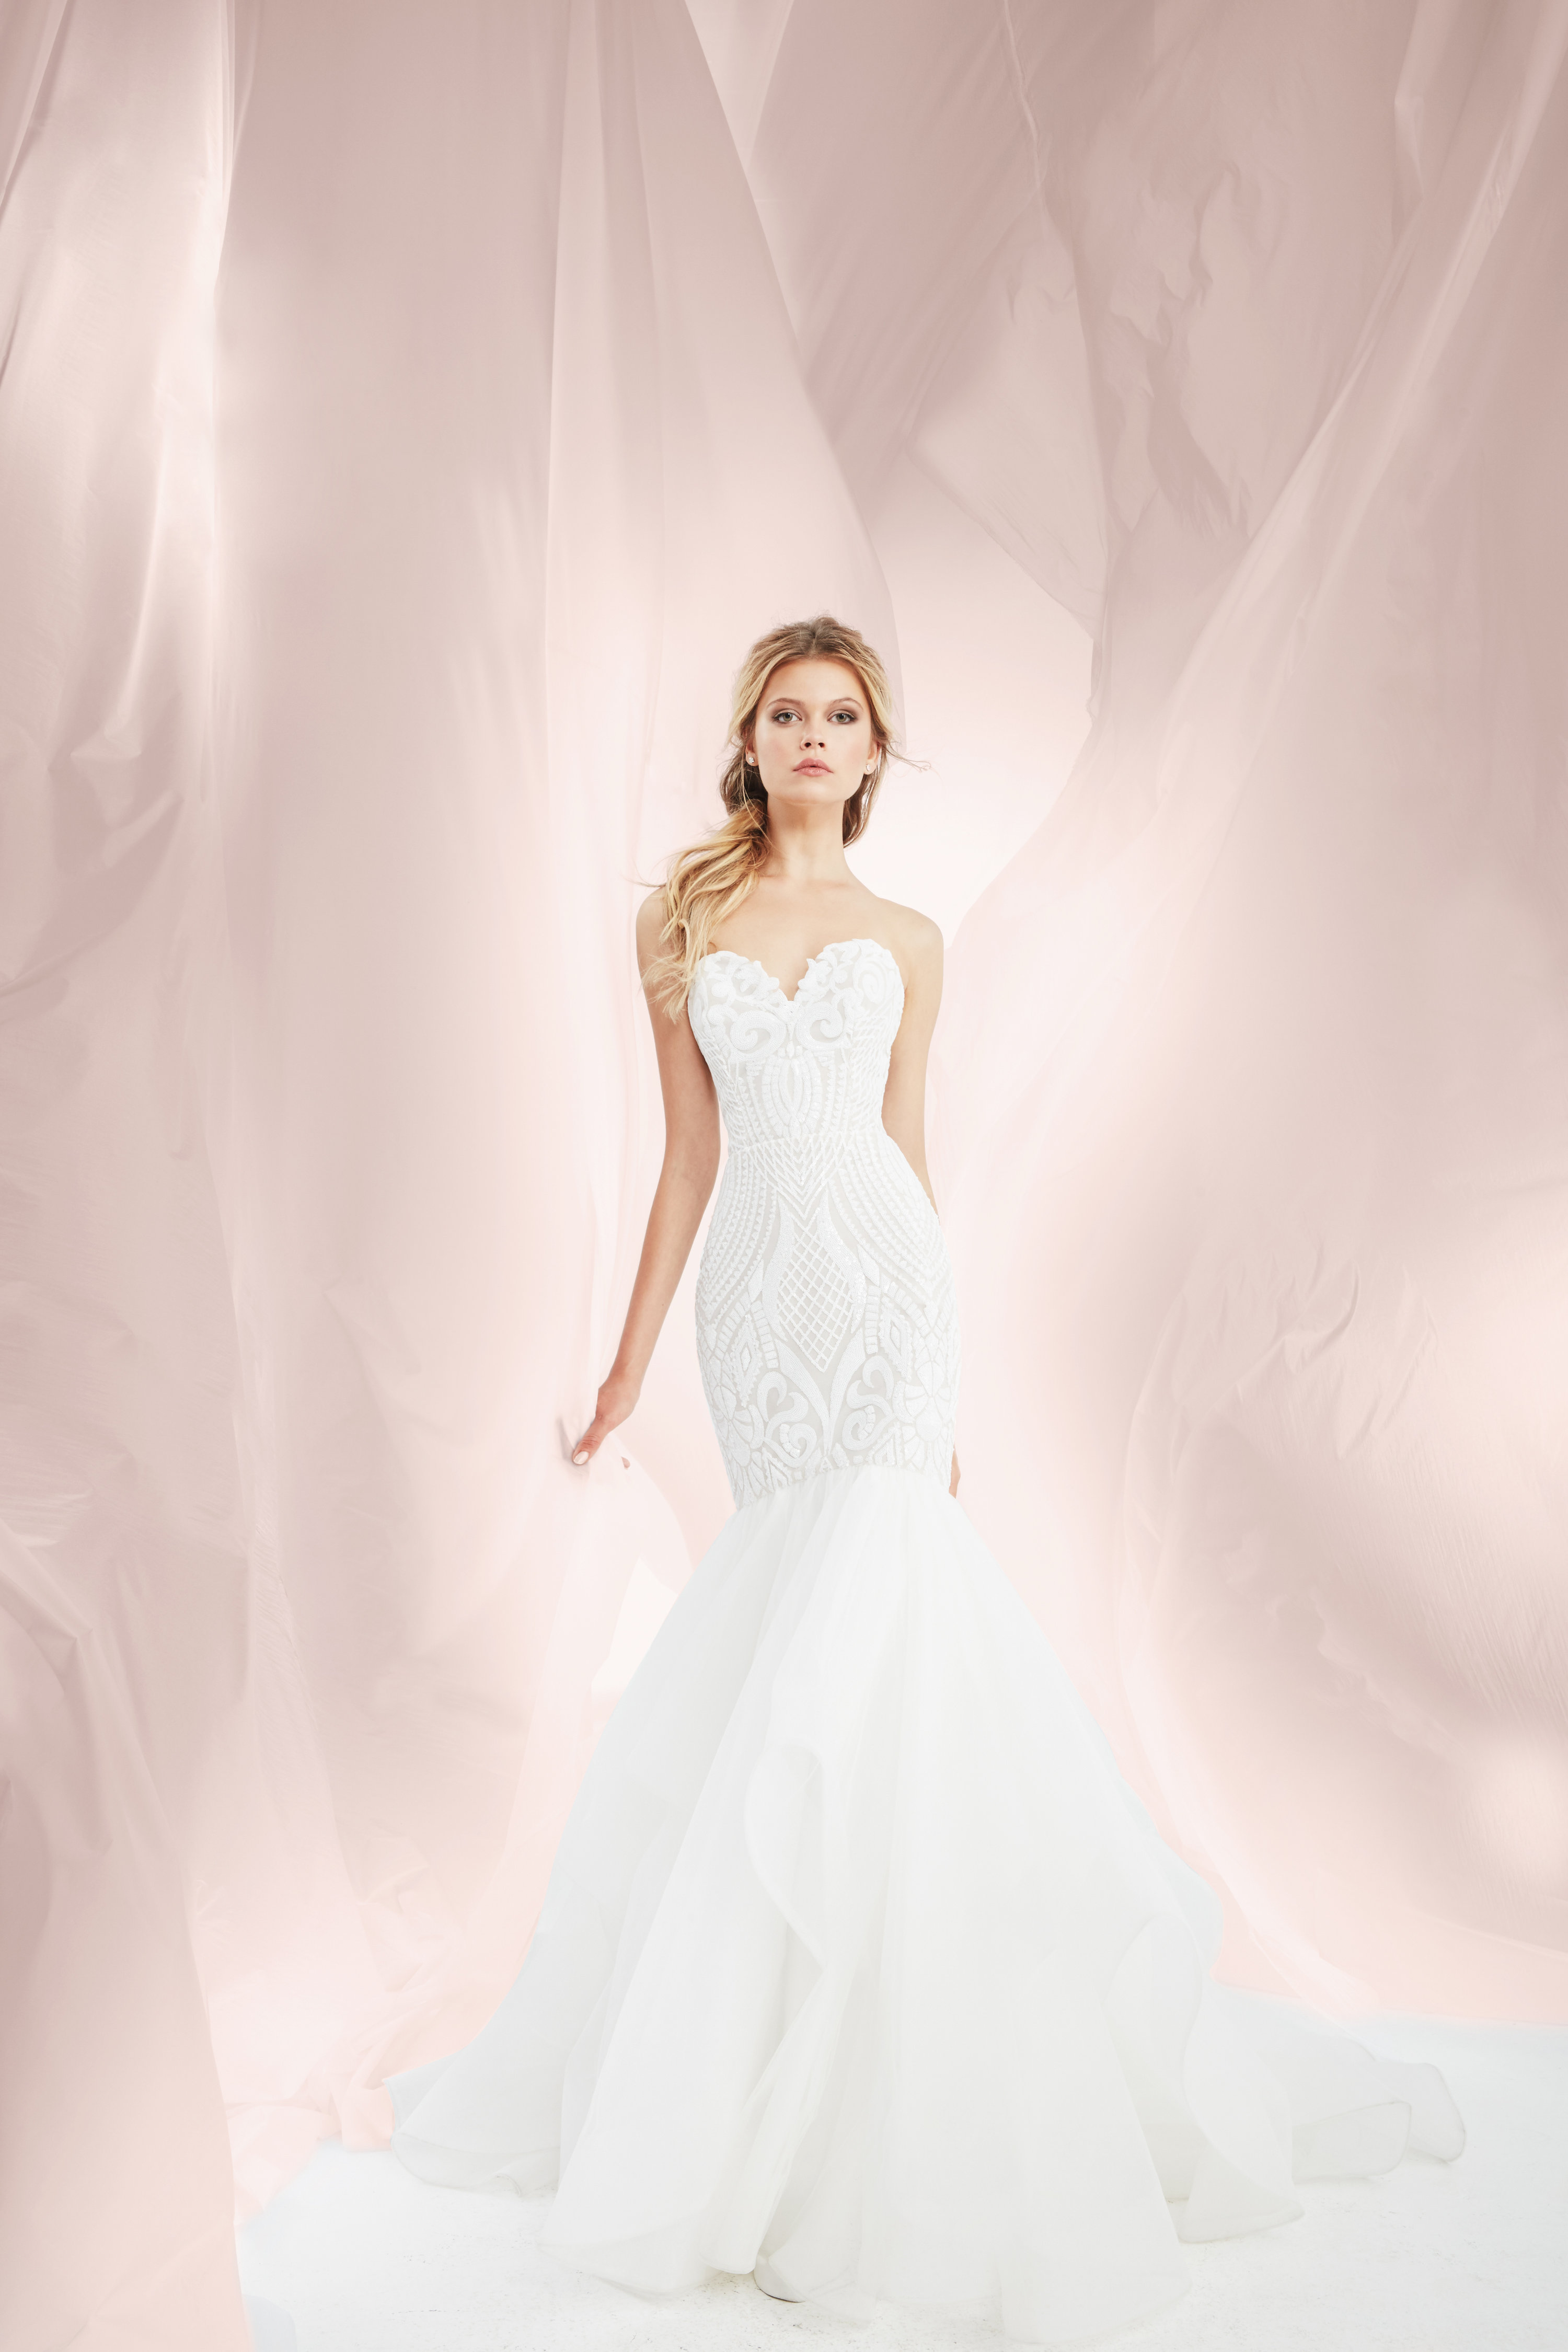 ccf13f6da43 Bridal Gowns and Wedding Dresses by JLM Couture - Style 1757 Reece